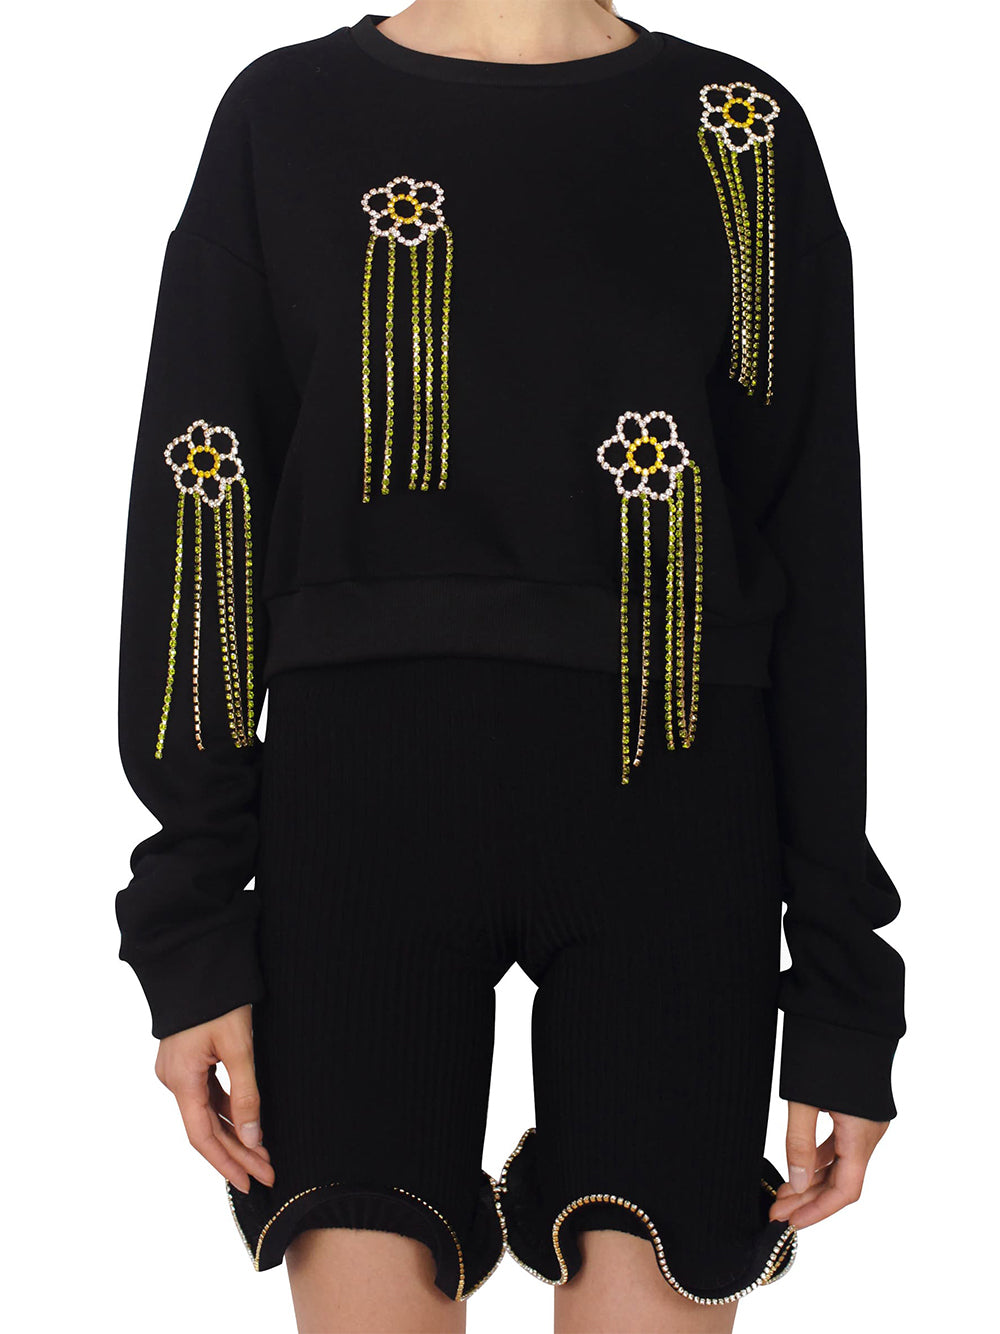 Floral Crystal Fringe French Terry Sweatshirt